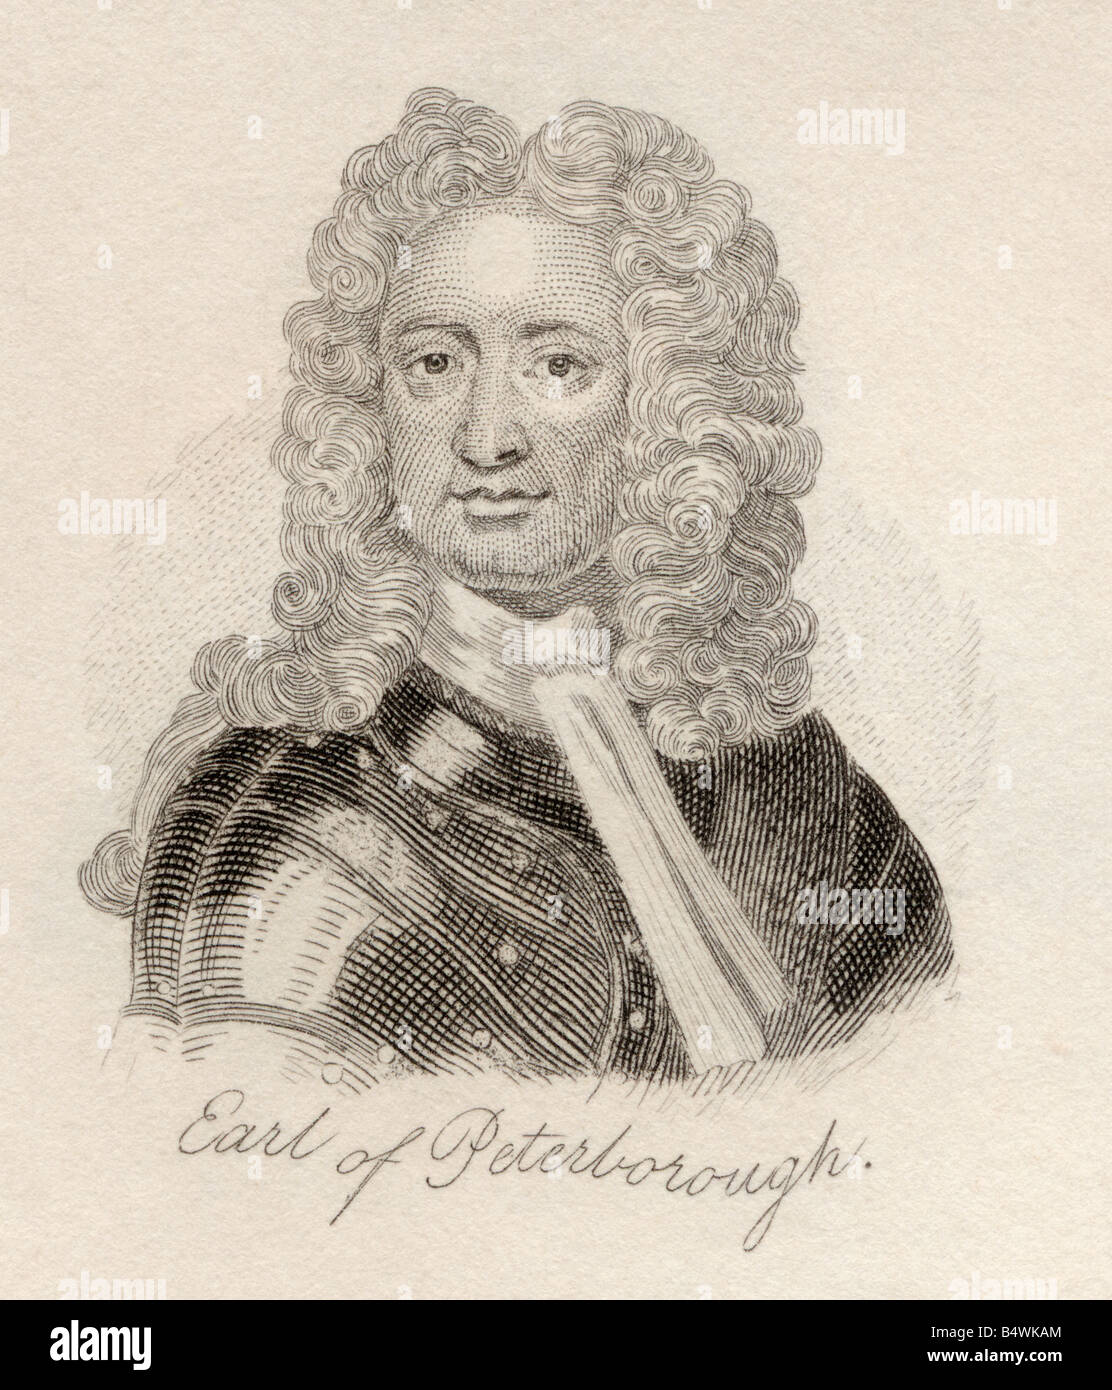 Charles Mordaunt 3rd Earl of Peterborough and 1st Earl of Monmouth 1658 to 1735. English nobleman and military leader. Stock Photo